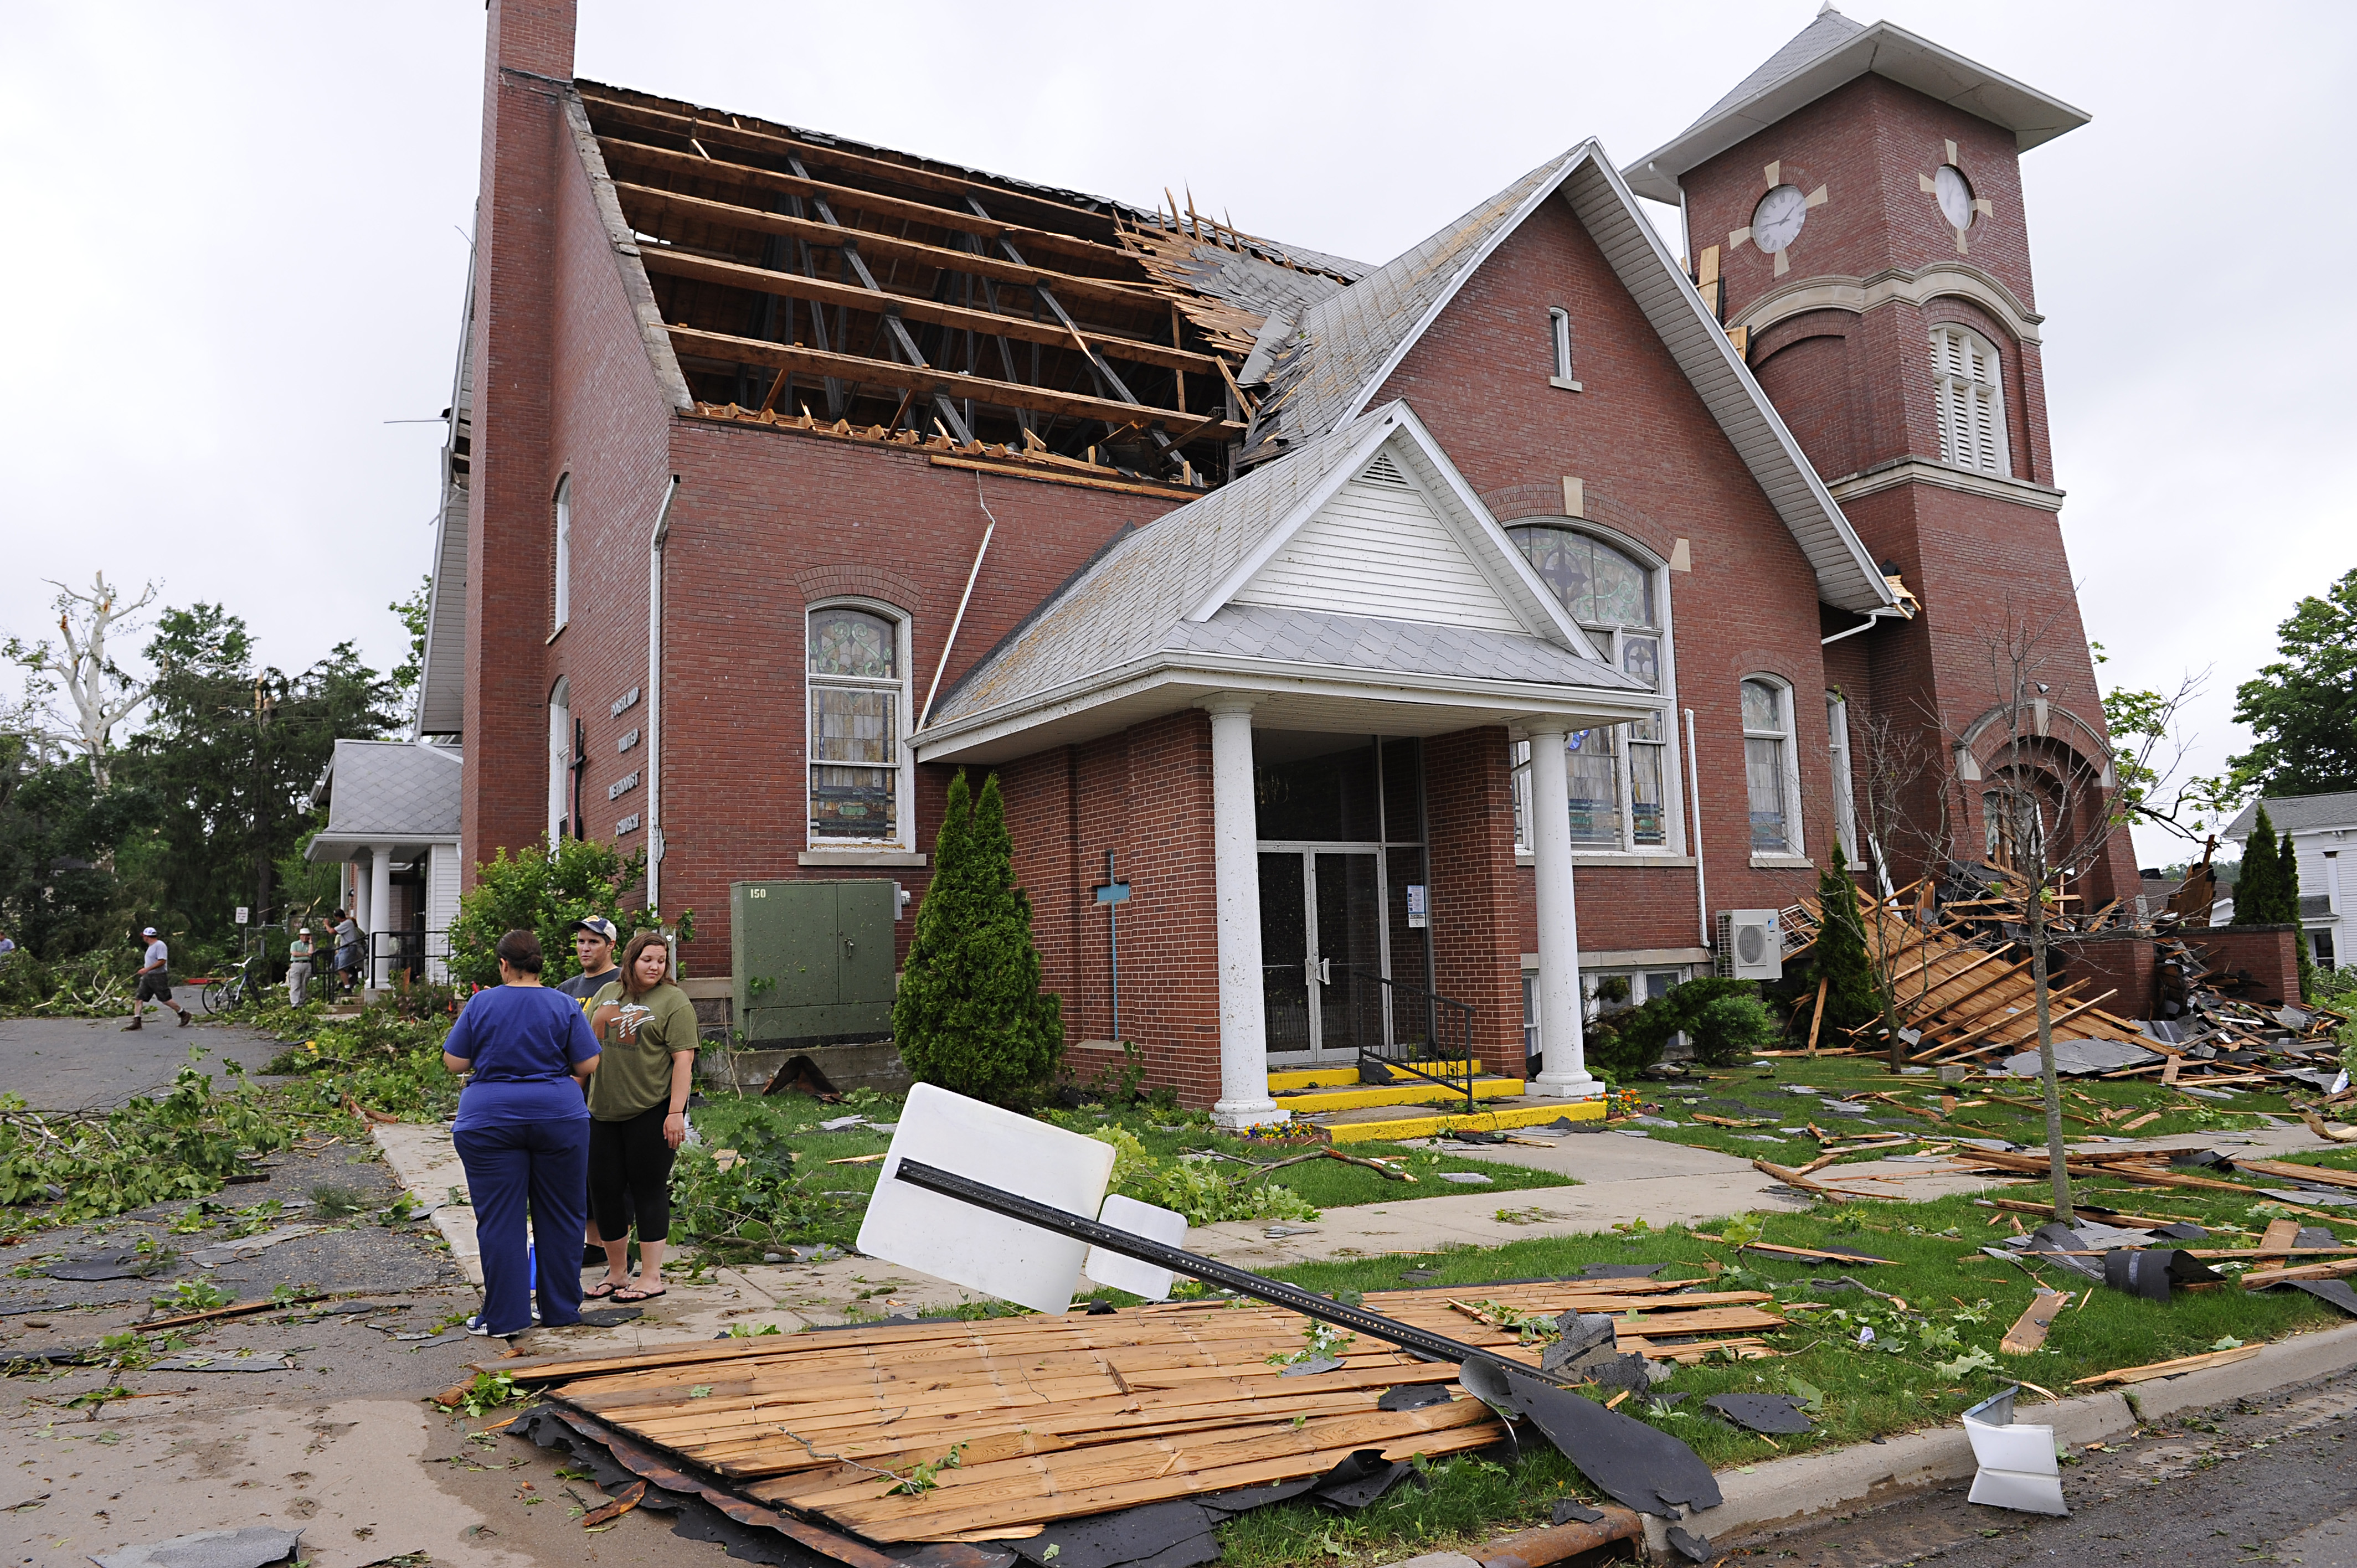 Storms Tornadoes Rake Midwest The Portland Press Herald